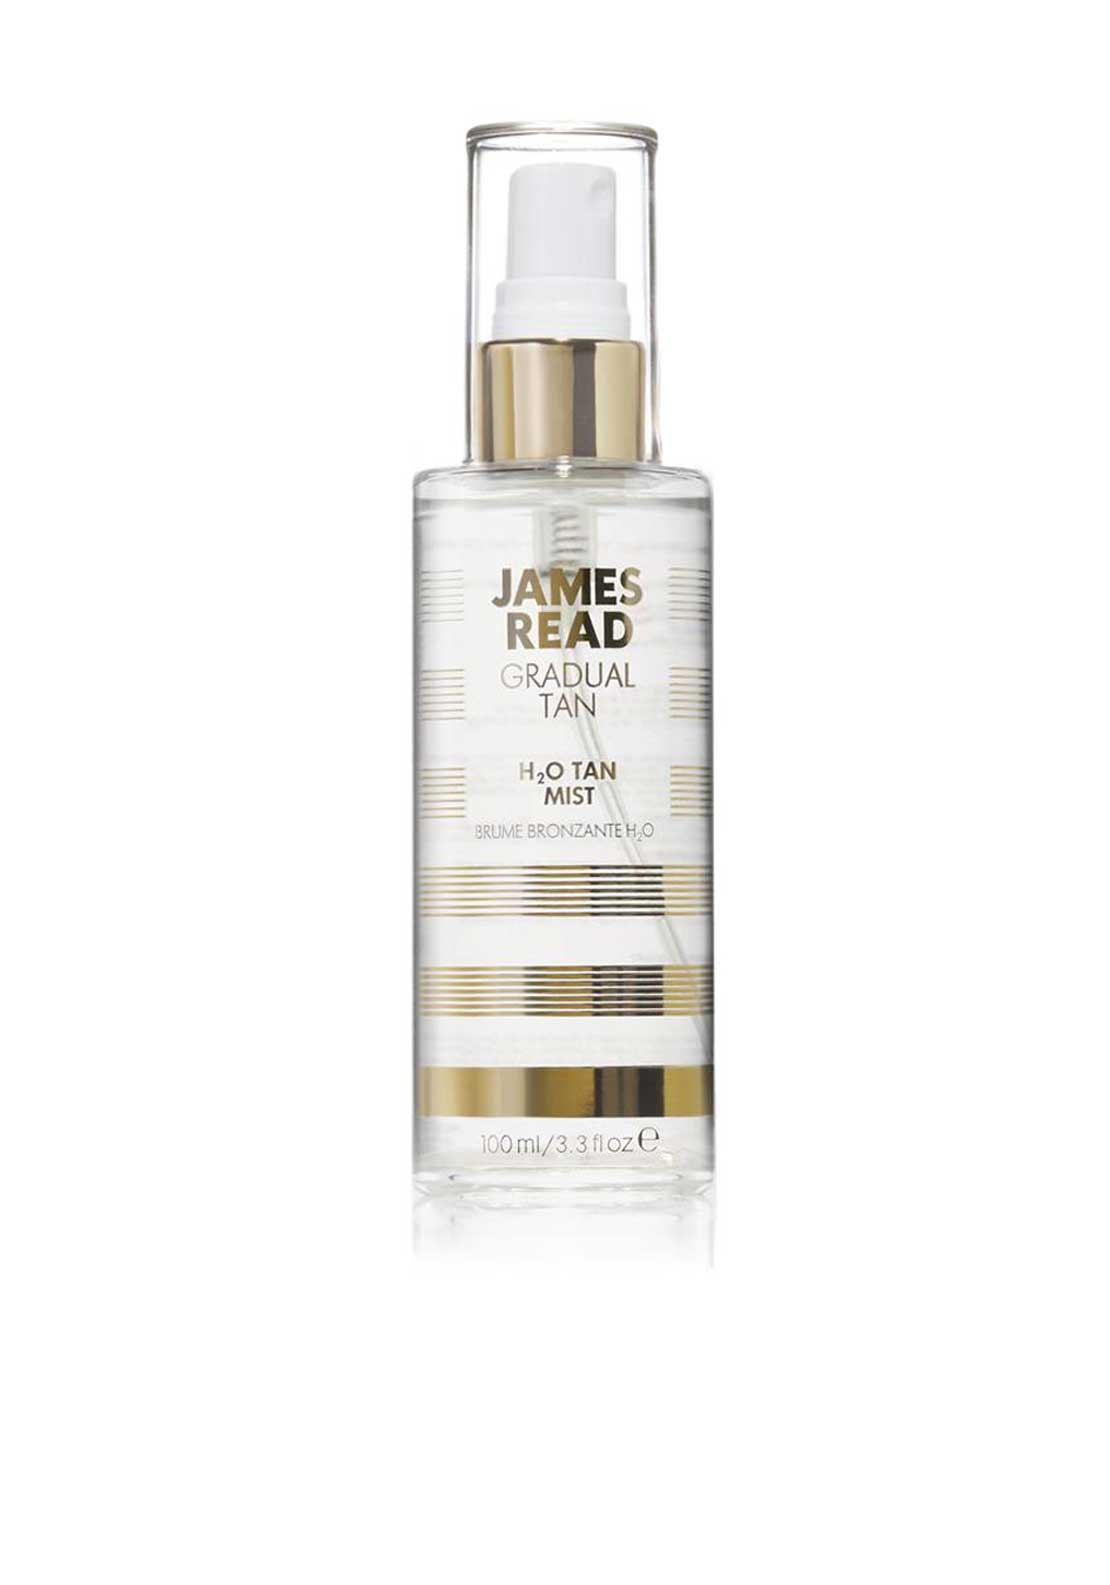 James Read Gradual Tan H2O Tan Mist